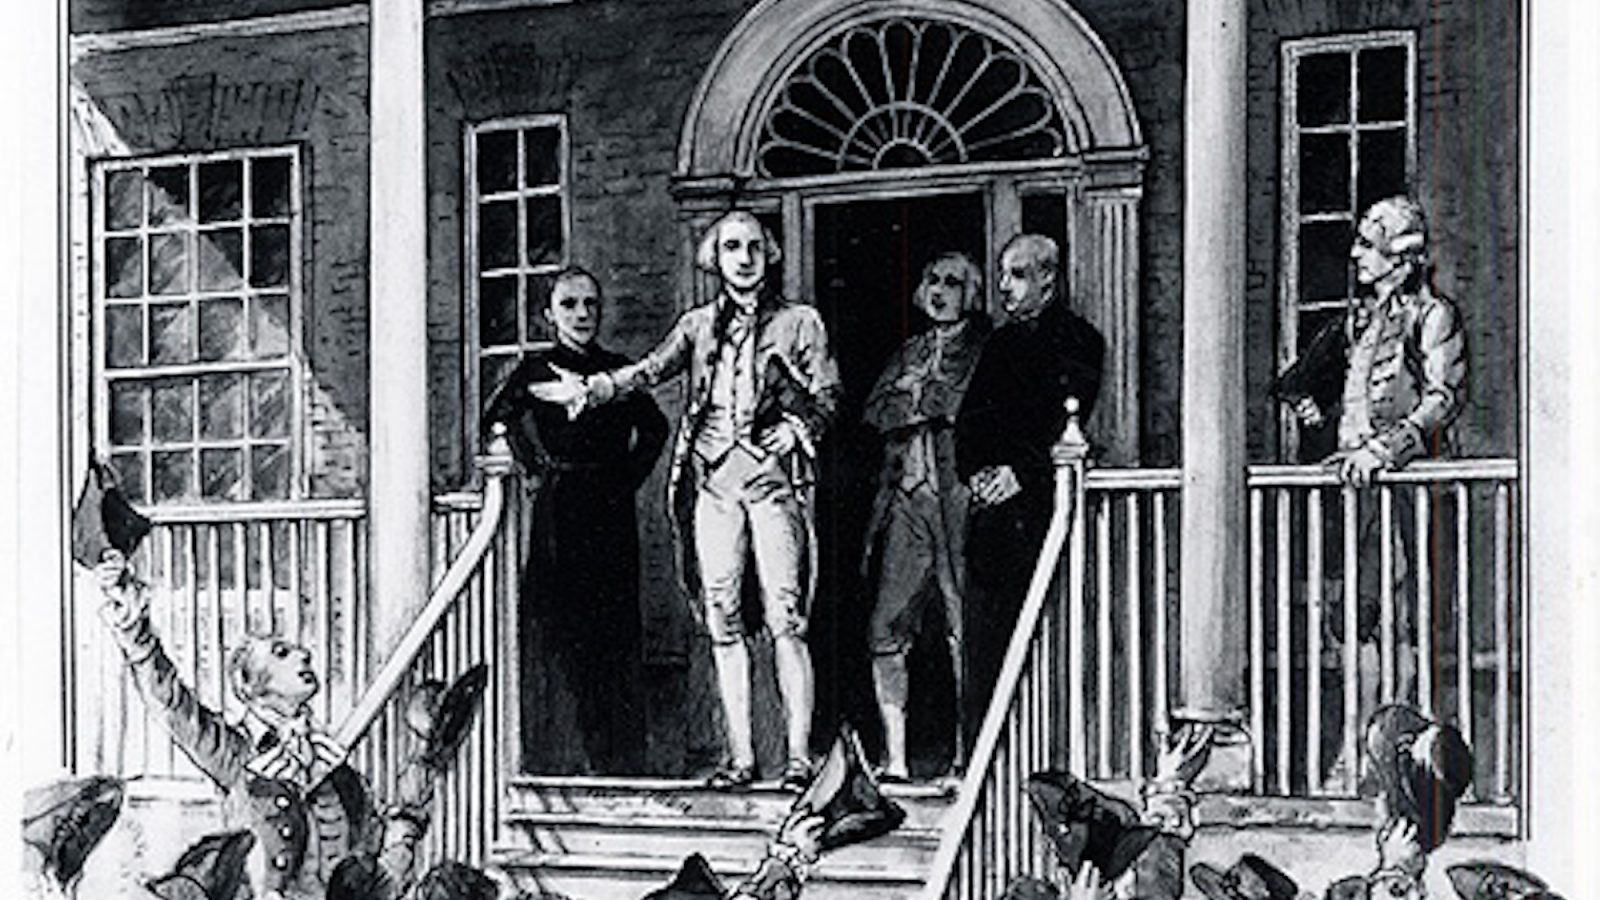 Black and white photo of a drawing of George Washington speaking from the steps of the Old North Building surrounded by an audience.